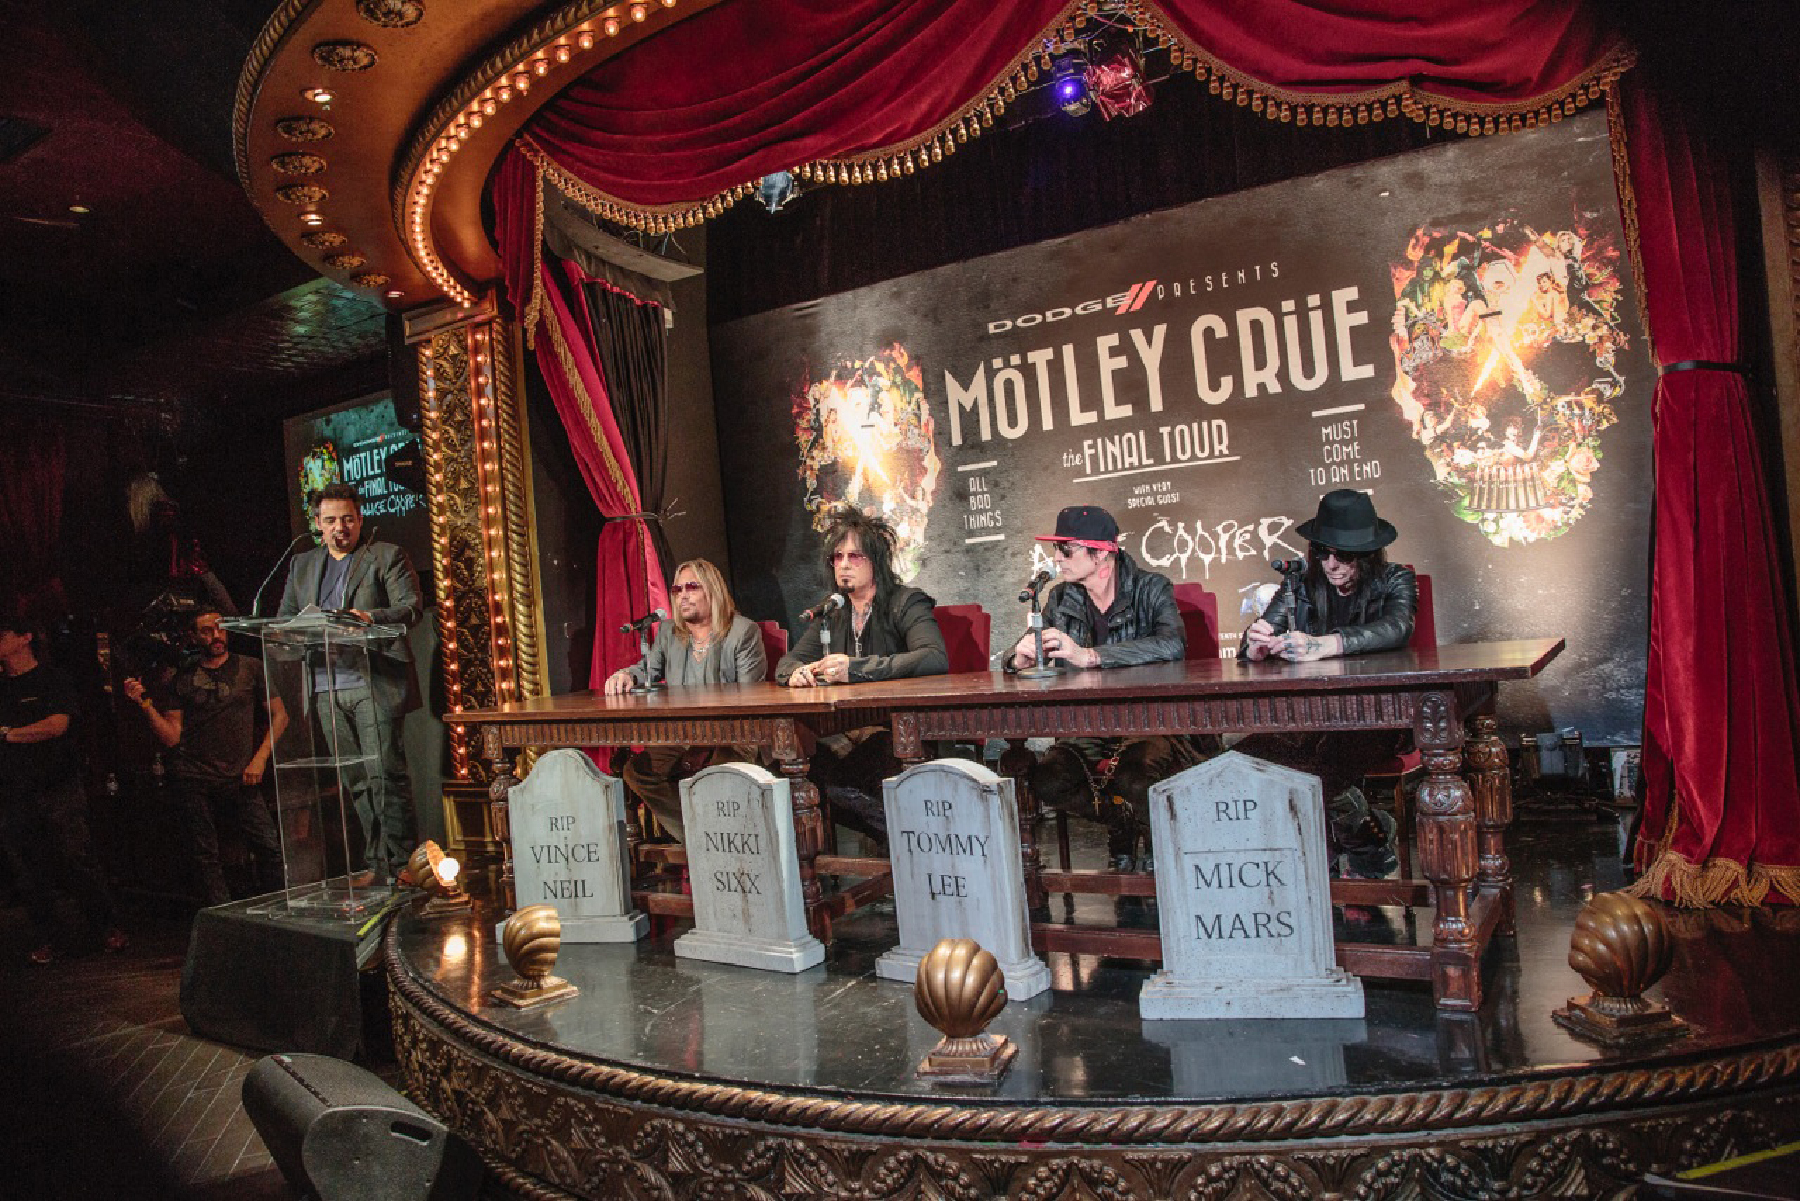 Vince Neil and Nikki Sixx Explain Why Motley Crue Are Calling it Quits